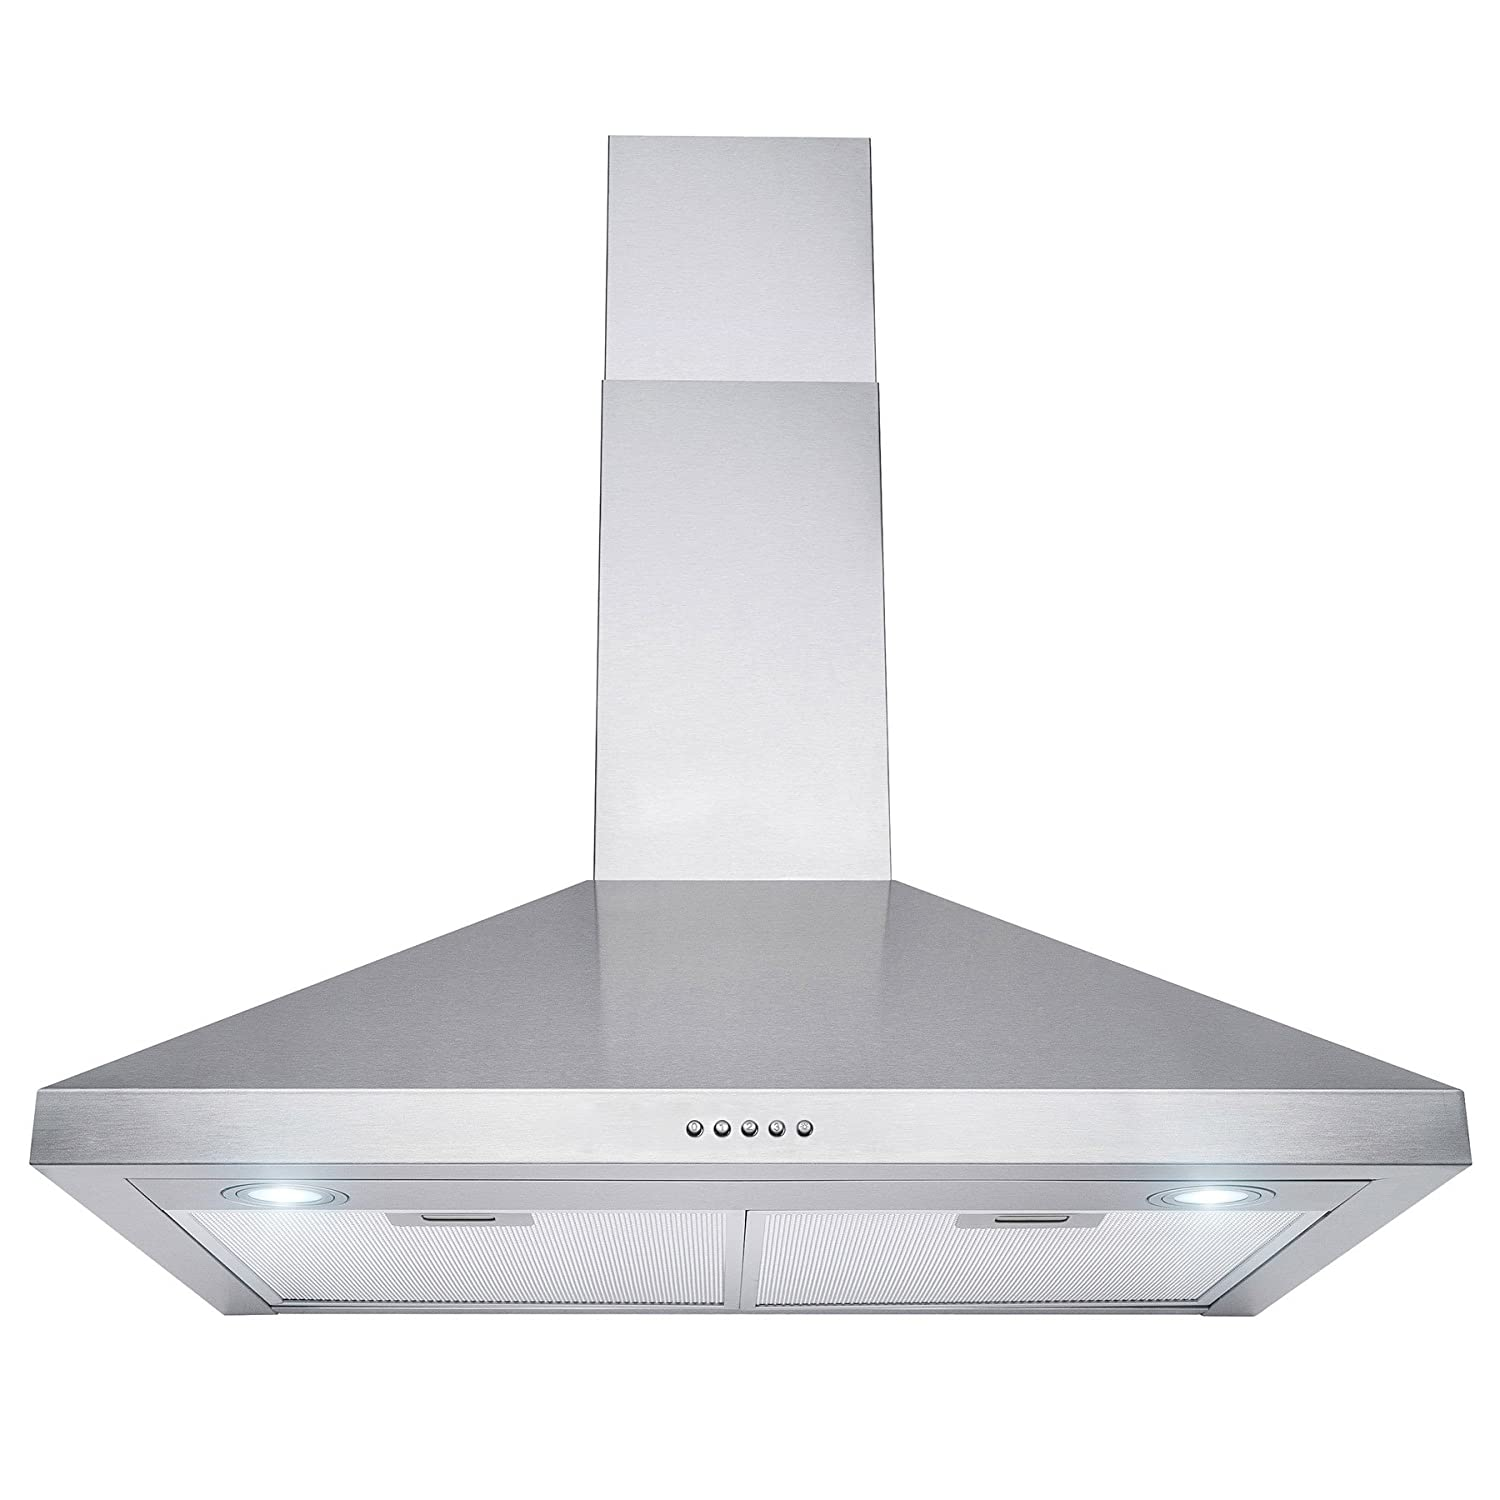 Perfetto Kitchen and Bath 30 Wall Mount Range Hood Brushed Stainless Steel Push Button Control RH0366